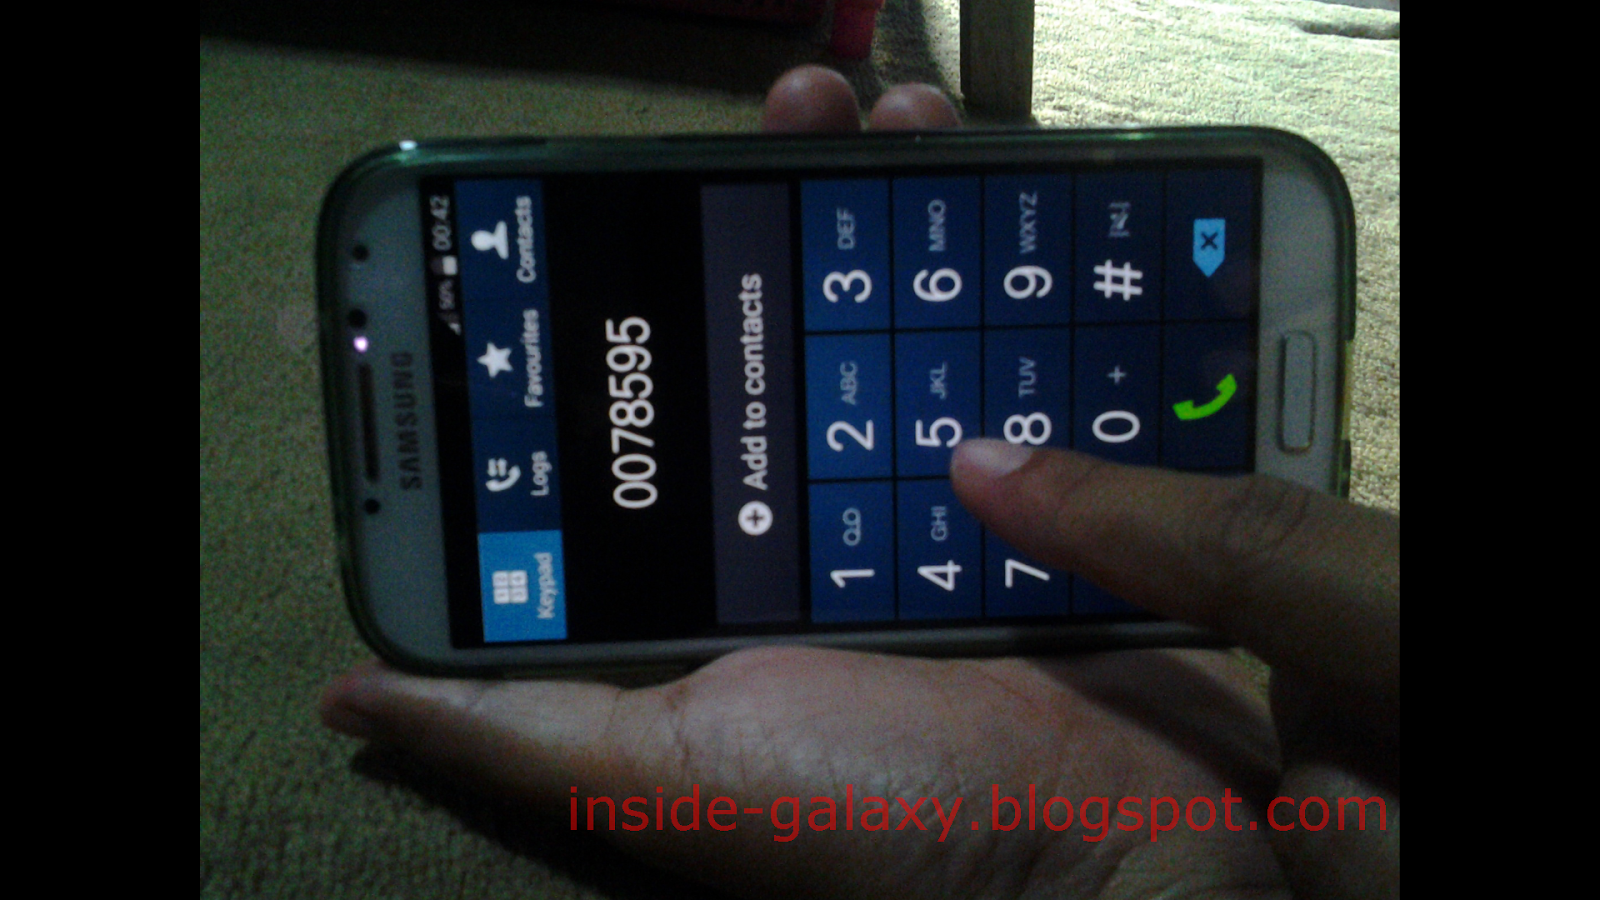 Samsung galaxy s4 how to enable and use smart rotation in android i sat and held my phone verticallyhorizontally and then i changed my face orientation along with my phone the phone detected my face and then rotated ccuart Image collections